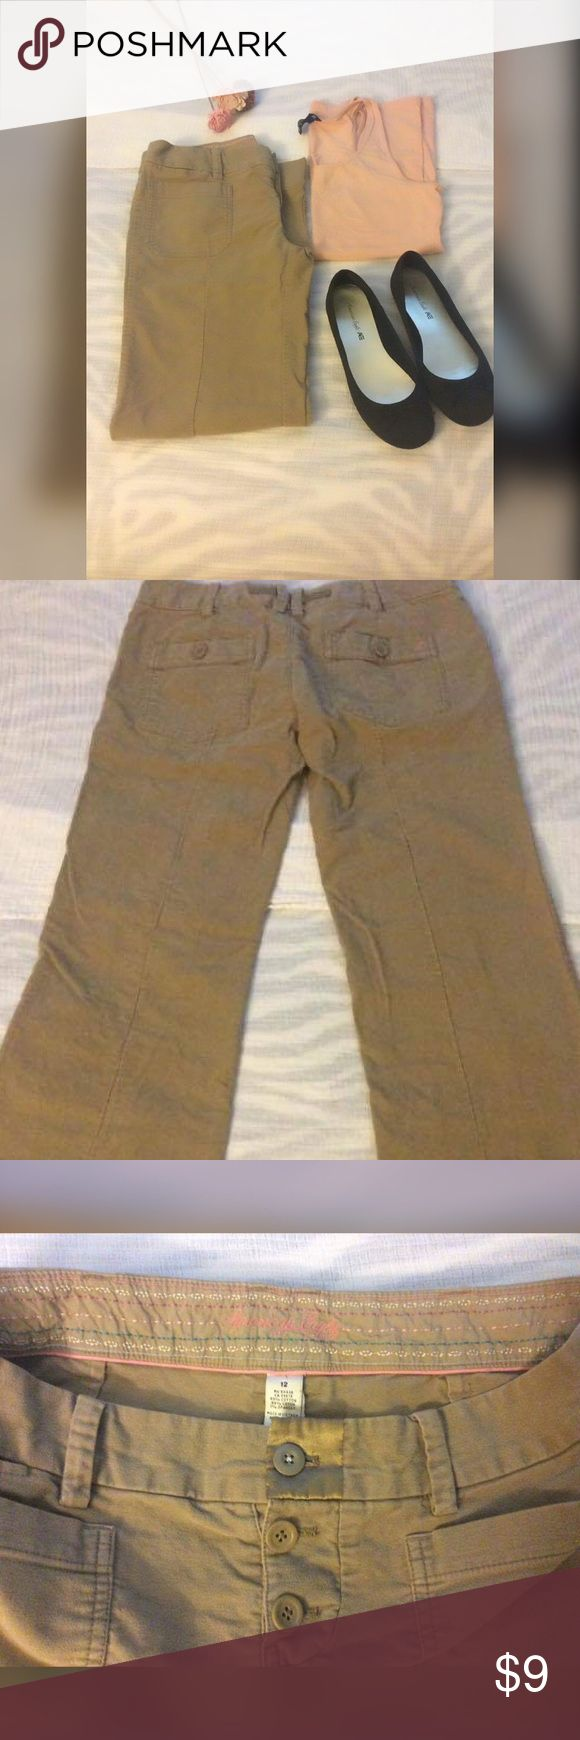 AE khaki corduroy pants These are in good used condition and very comfy! Let me just point out the minor fraying in last photo as well as top button was replaced with slightly diff button. American Eagle Outfitters Pants Trousers